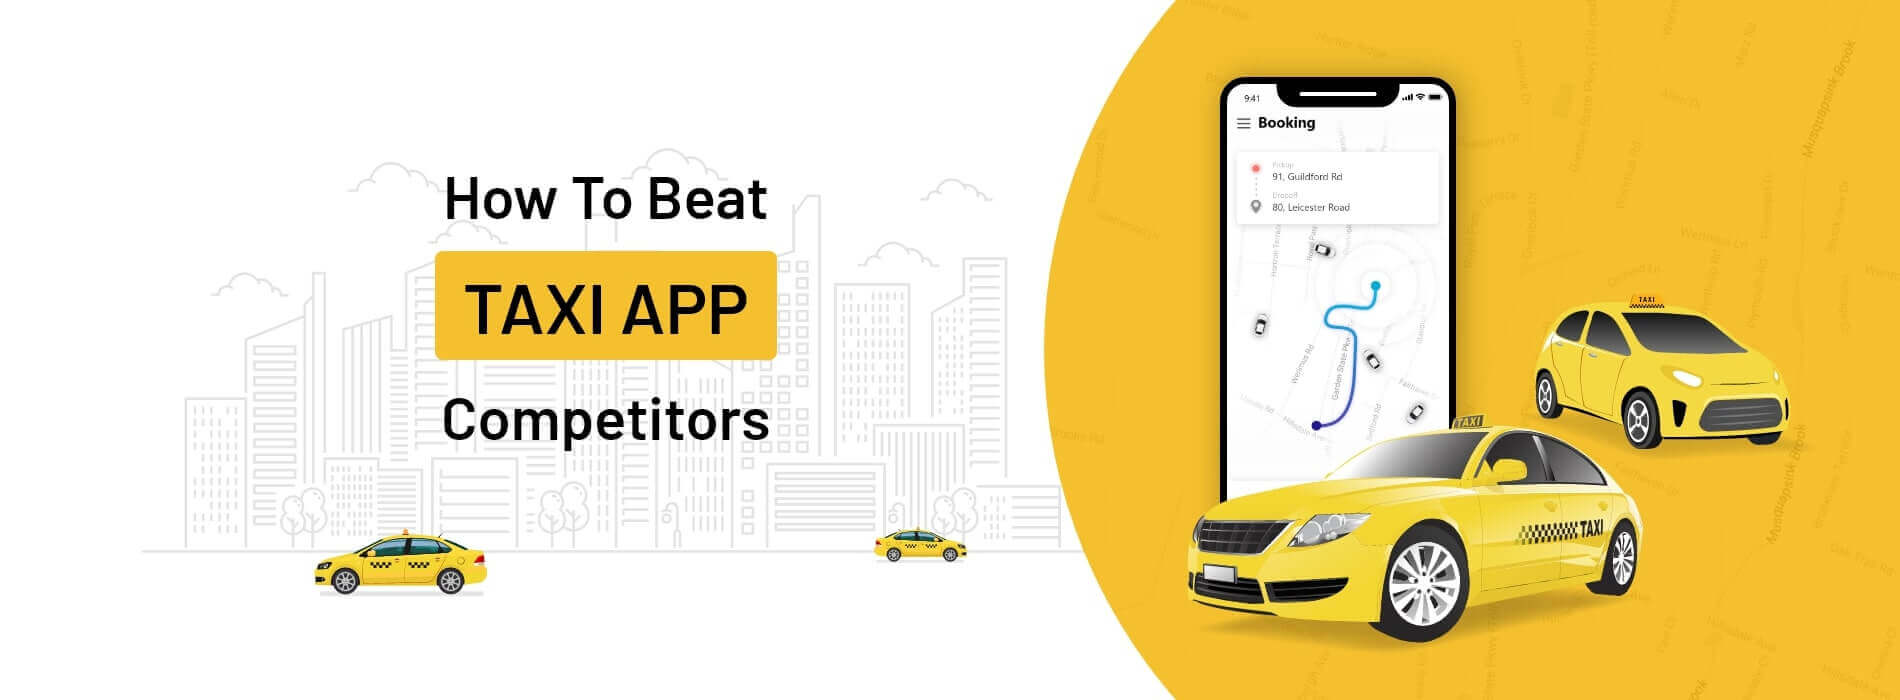 How Taxi Companies Can Stay Competitive and Get Ahead of Other Transit Apps?